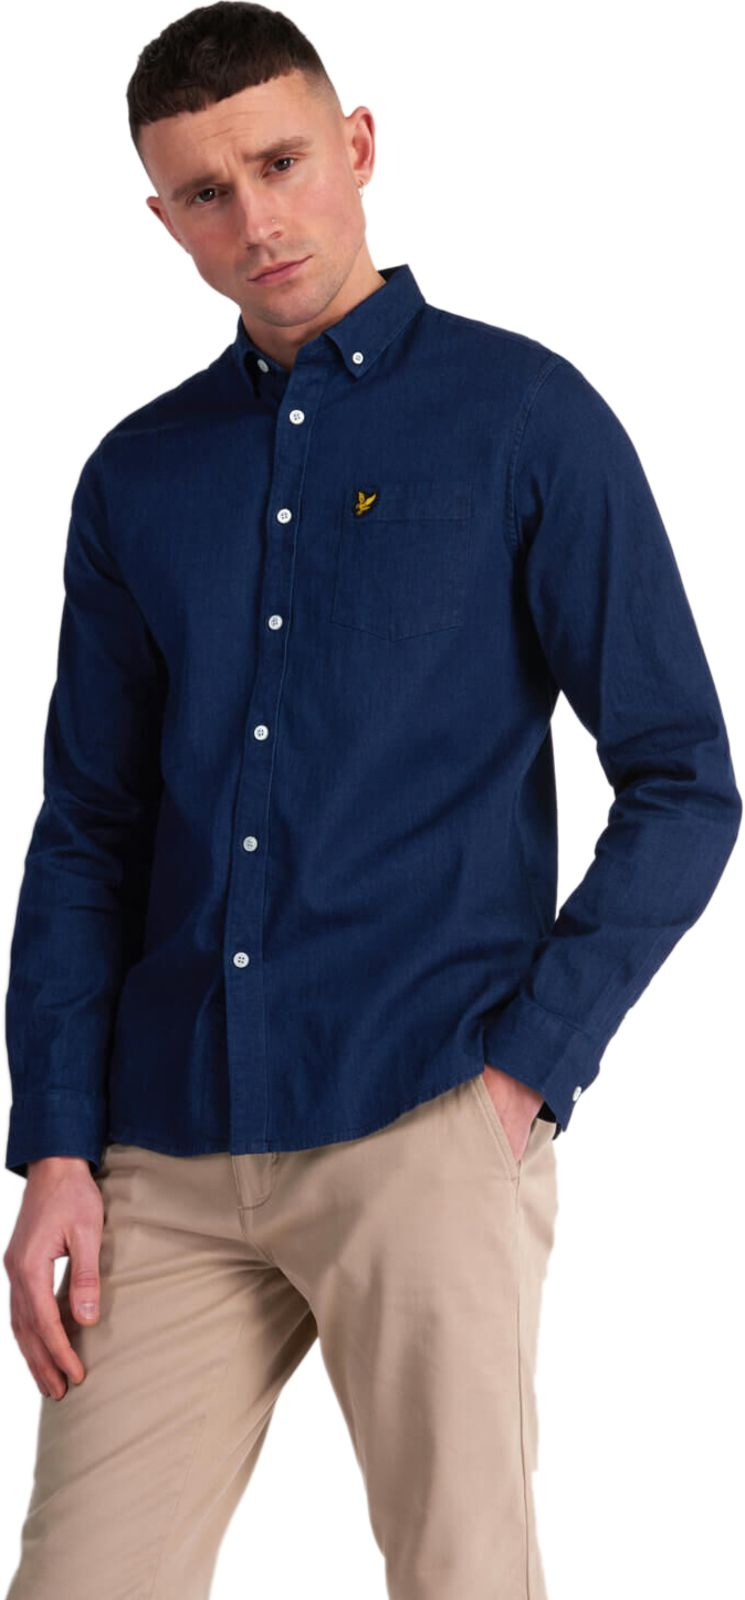 Lyle & Scott Indigo Long Sleeve Shirt Blue